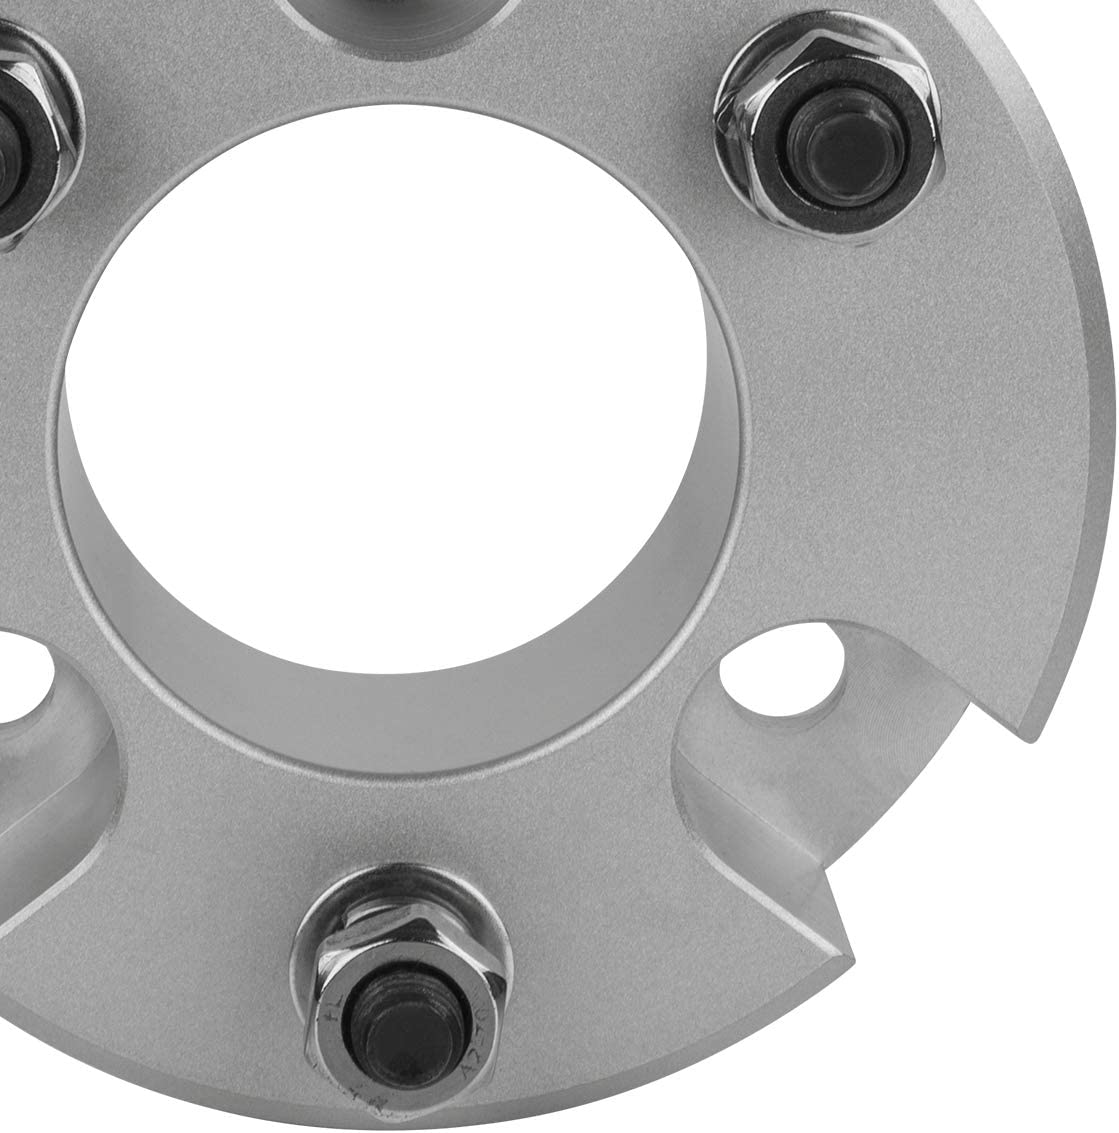 Silver Front Leveling Kit for 2005-2020 Nissan Frontier and 2005-2015 Nissan Xterra 3 Front Lift Aircraft Billet Strut Spacers Kit 2WD 4WD Supreme Suspensions